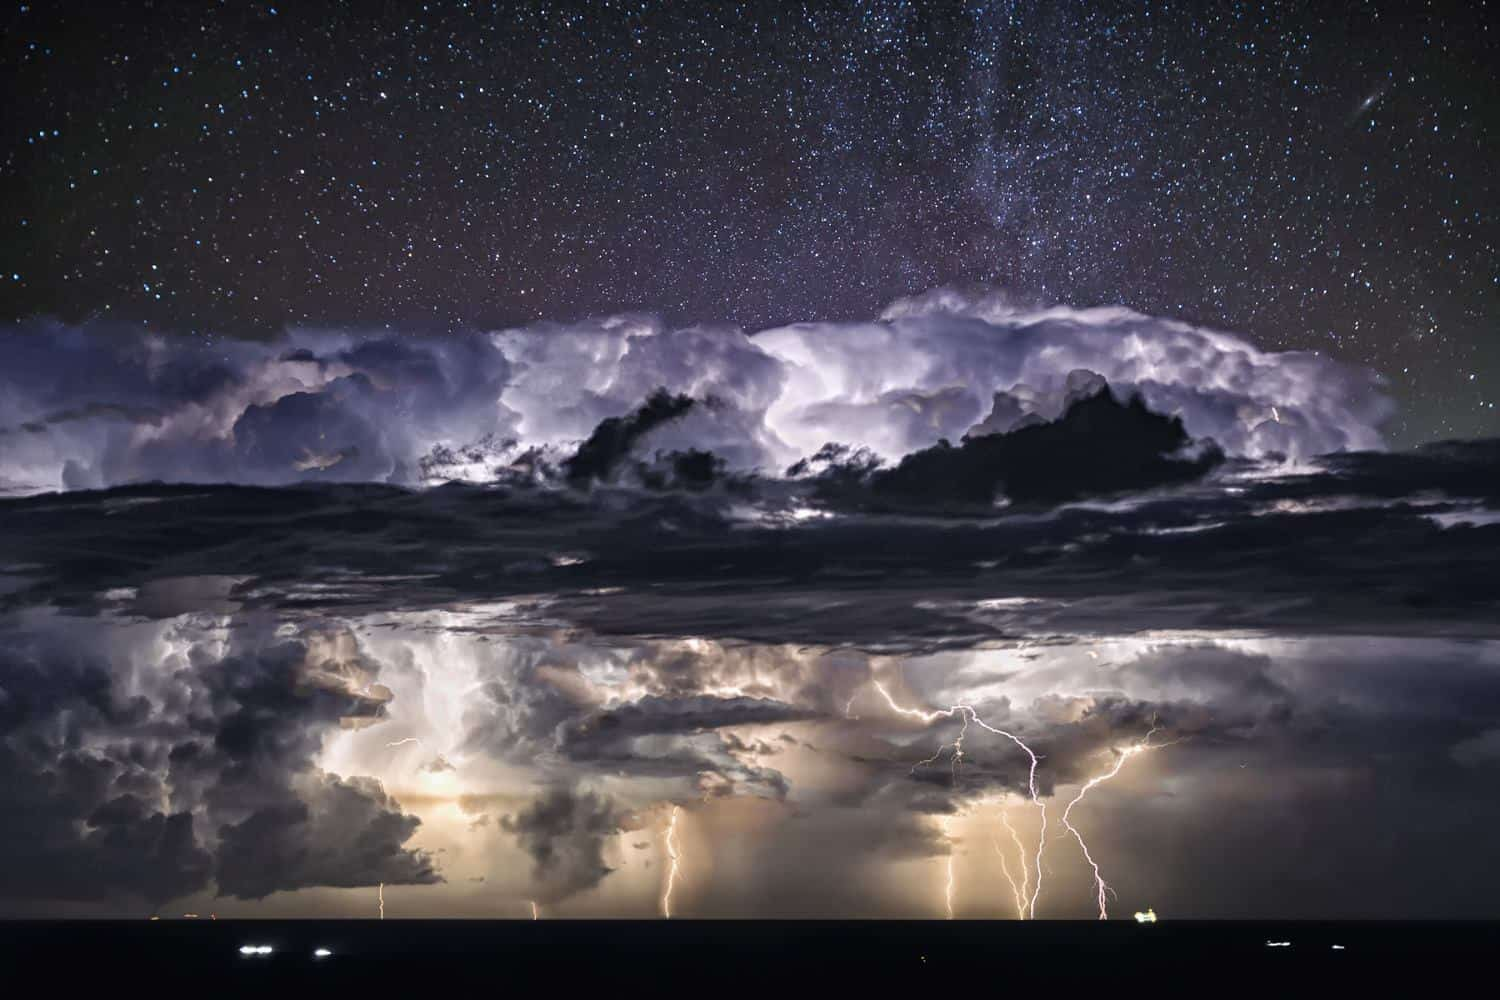 ..Nightscape Lightning Storm Amazing night chase over the adriatic sea, huge thunderstorm from Ancona to Venezia. Absolutely the most beautiful and spectacular storm i ever seen in my life. You can see also a waterspout in the lower left. From Fiorenzuola di Focara,Italy,  19 August 2015.